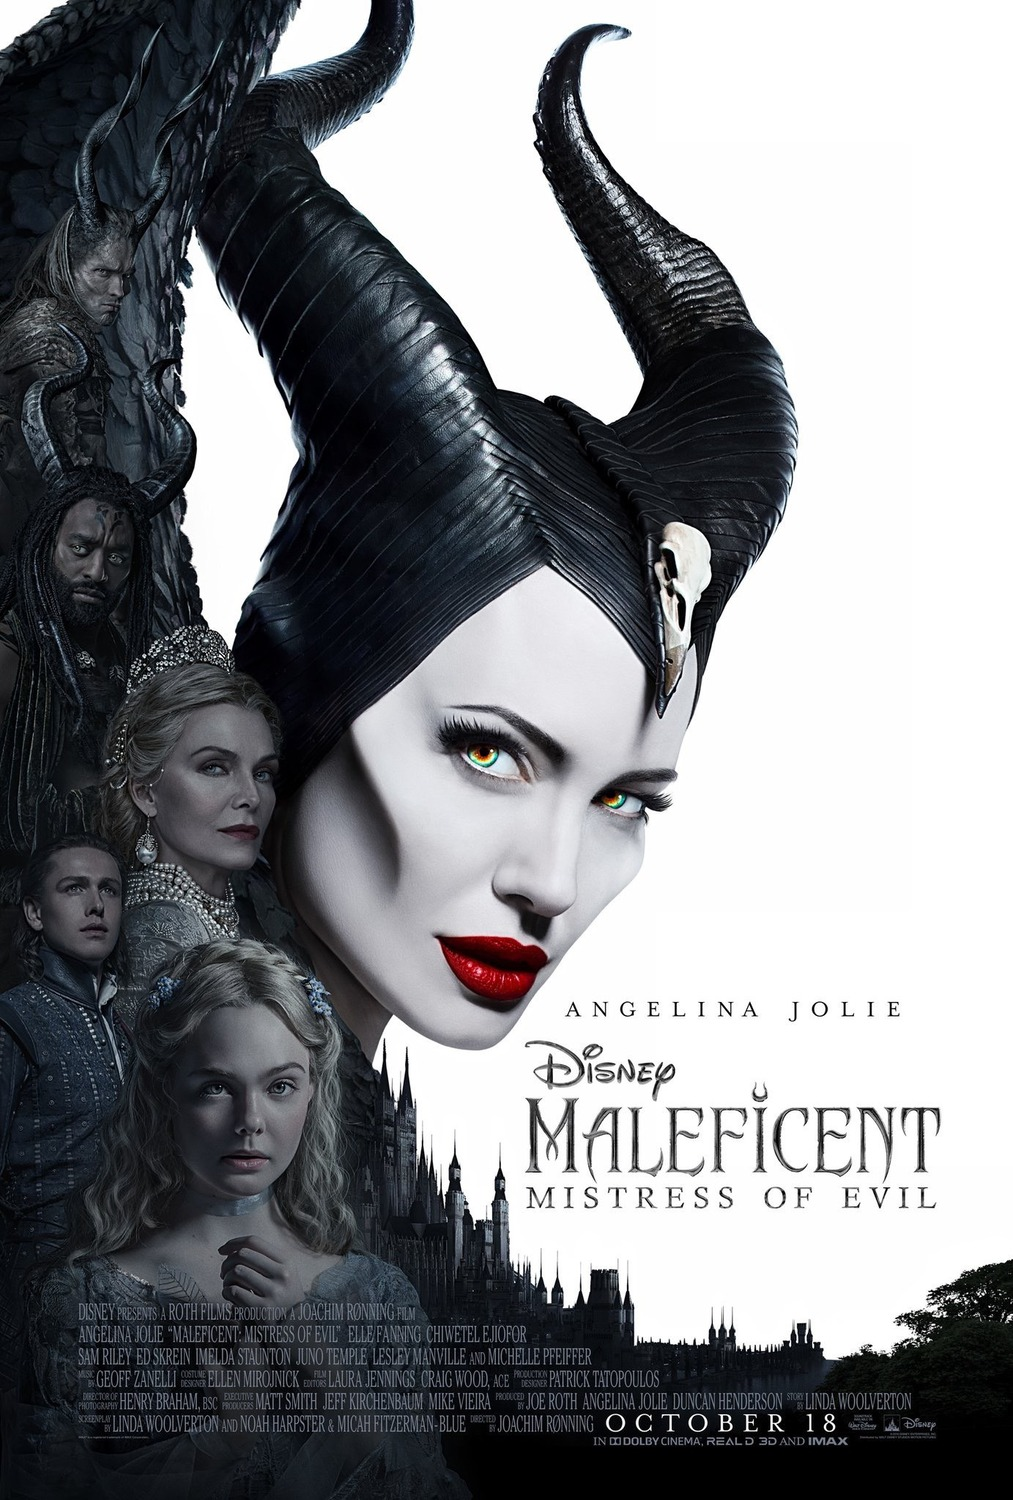 Maleficent Mistress Of Evil The Movie Spoiler